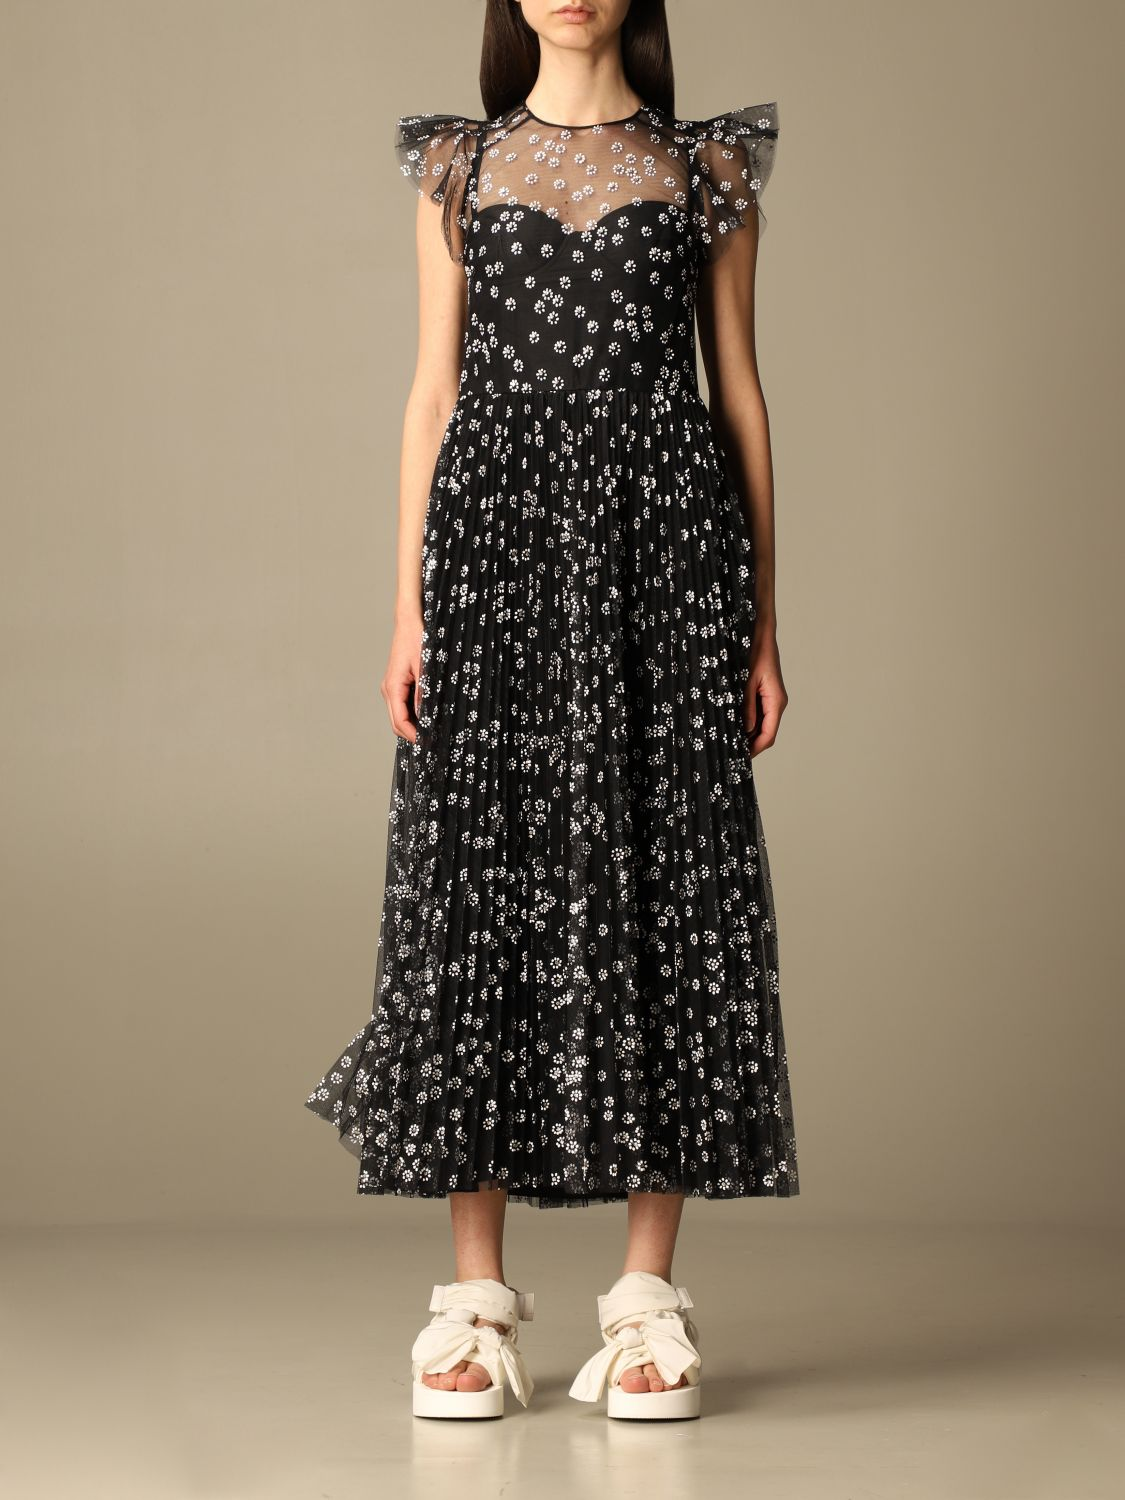 Red Valentino Dress Red Valentino Long Dress In Floral Patterned Tulle